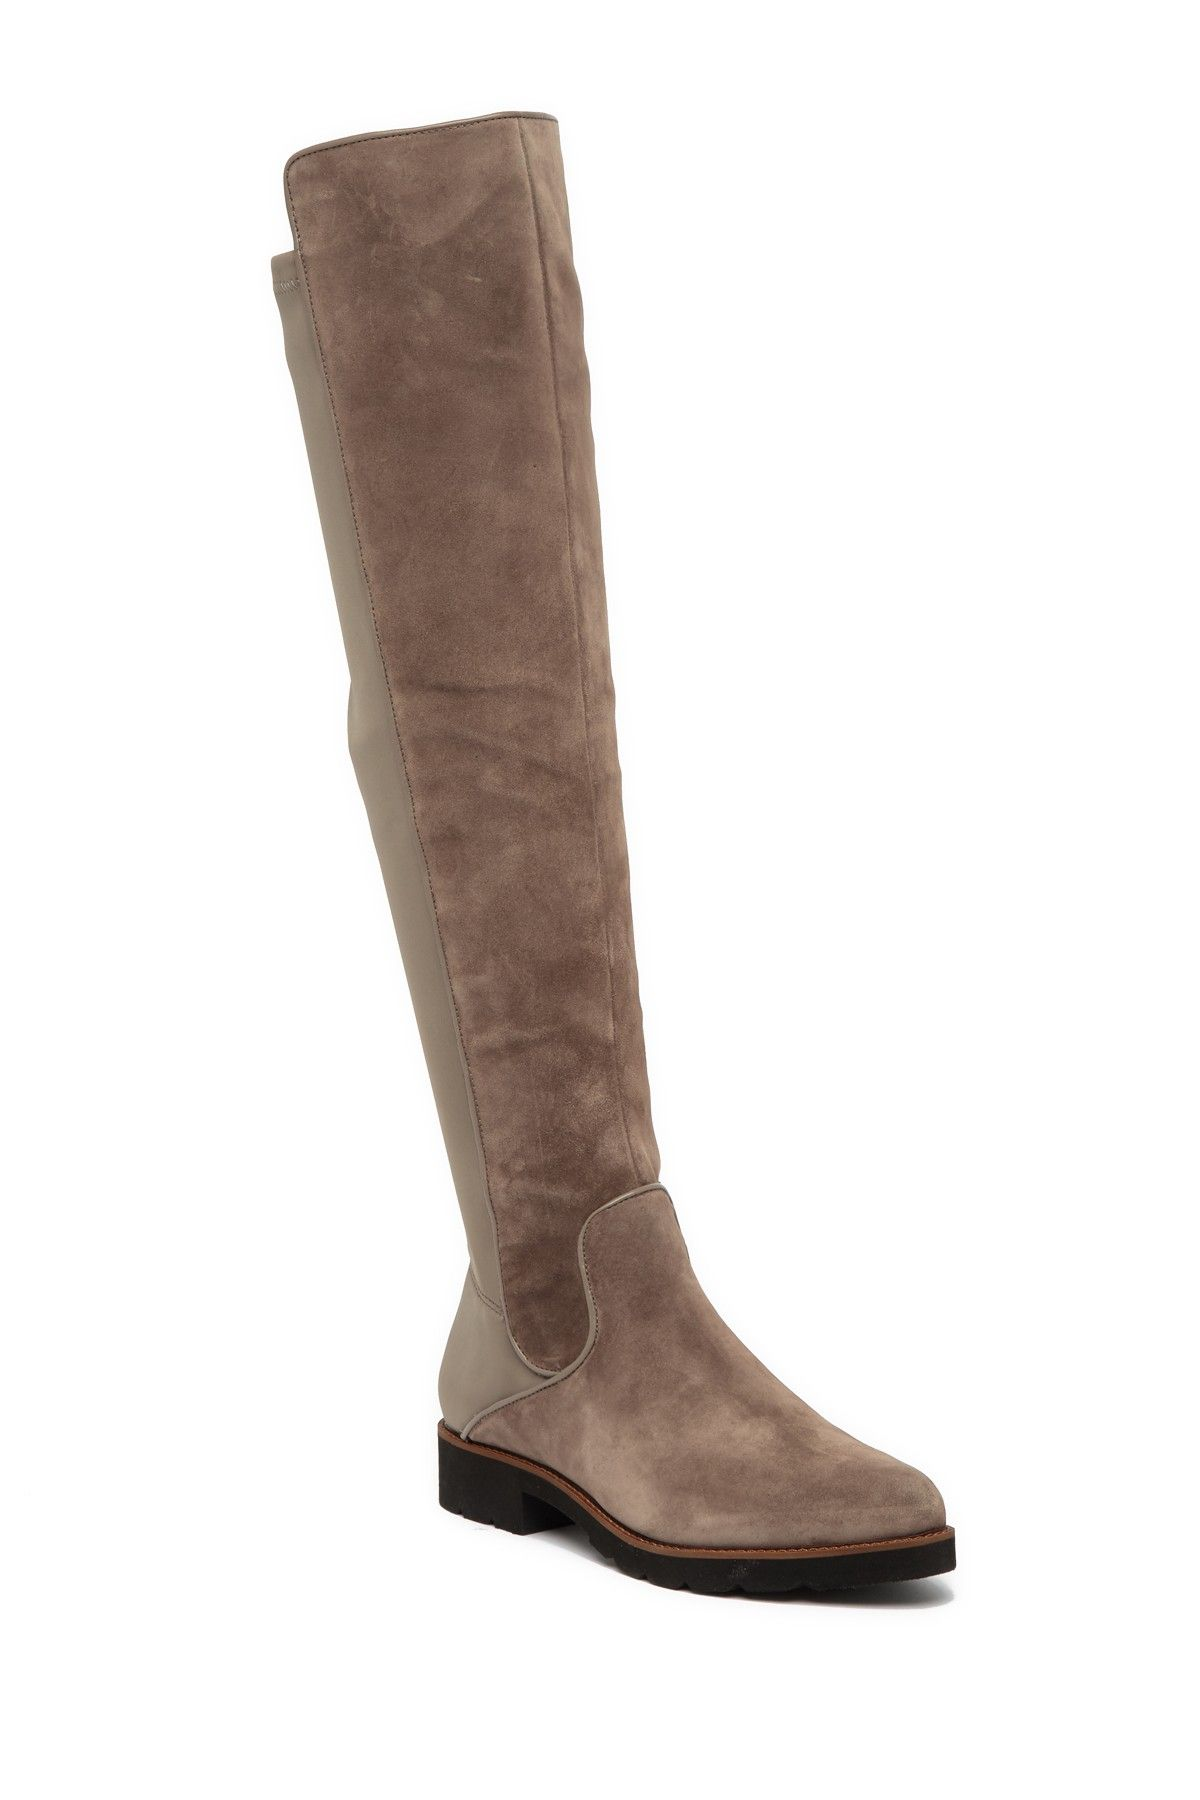 ef9670f43c7 Franco Sarto - Benner Over the Knee Boot (Women) is now 60% off. Free  Shipping on orders over  100.